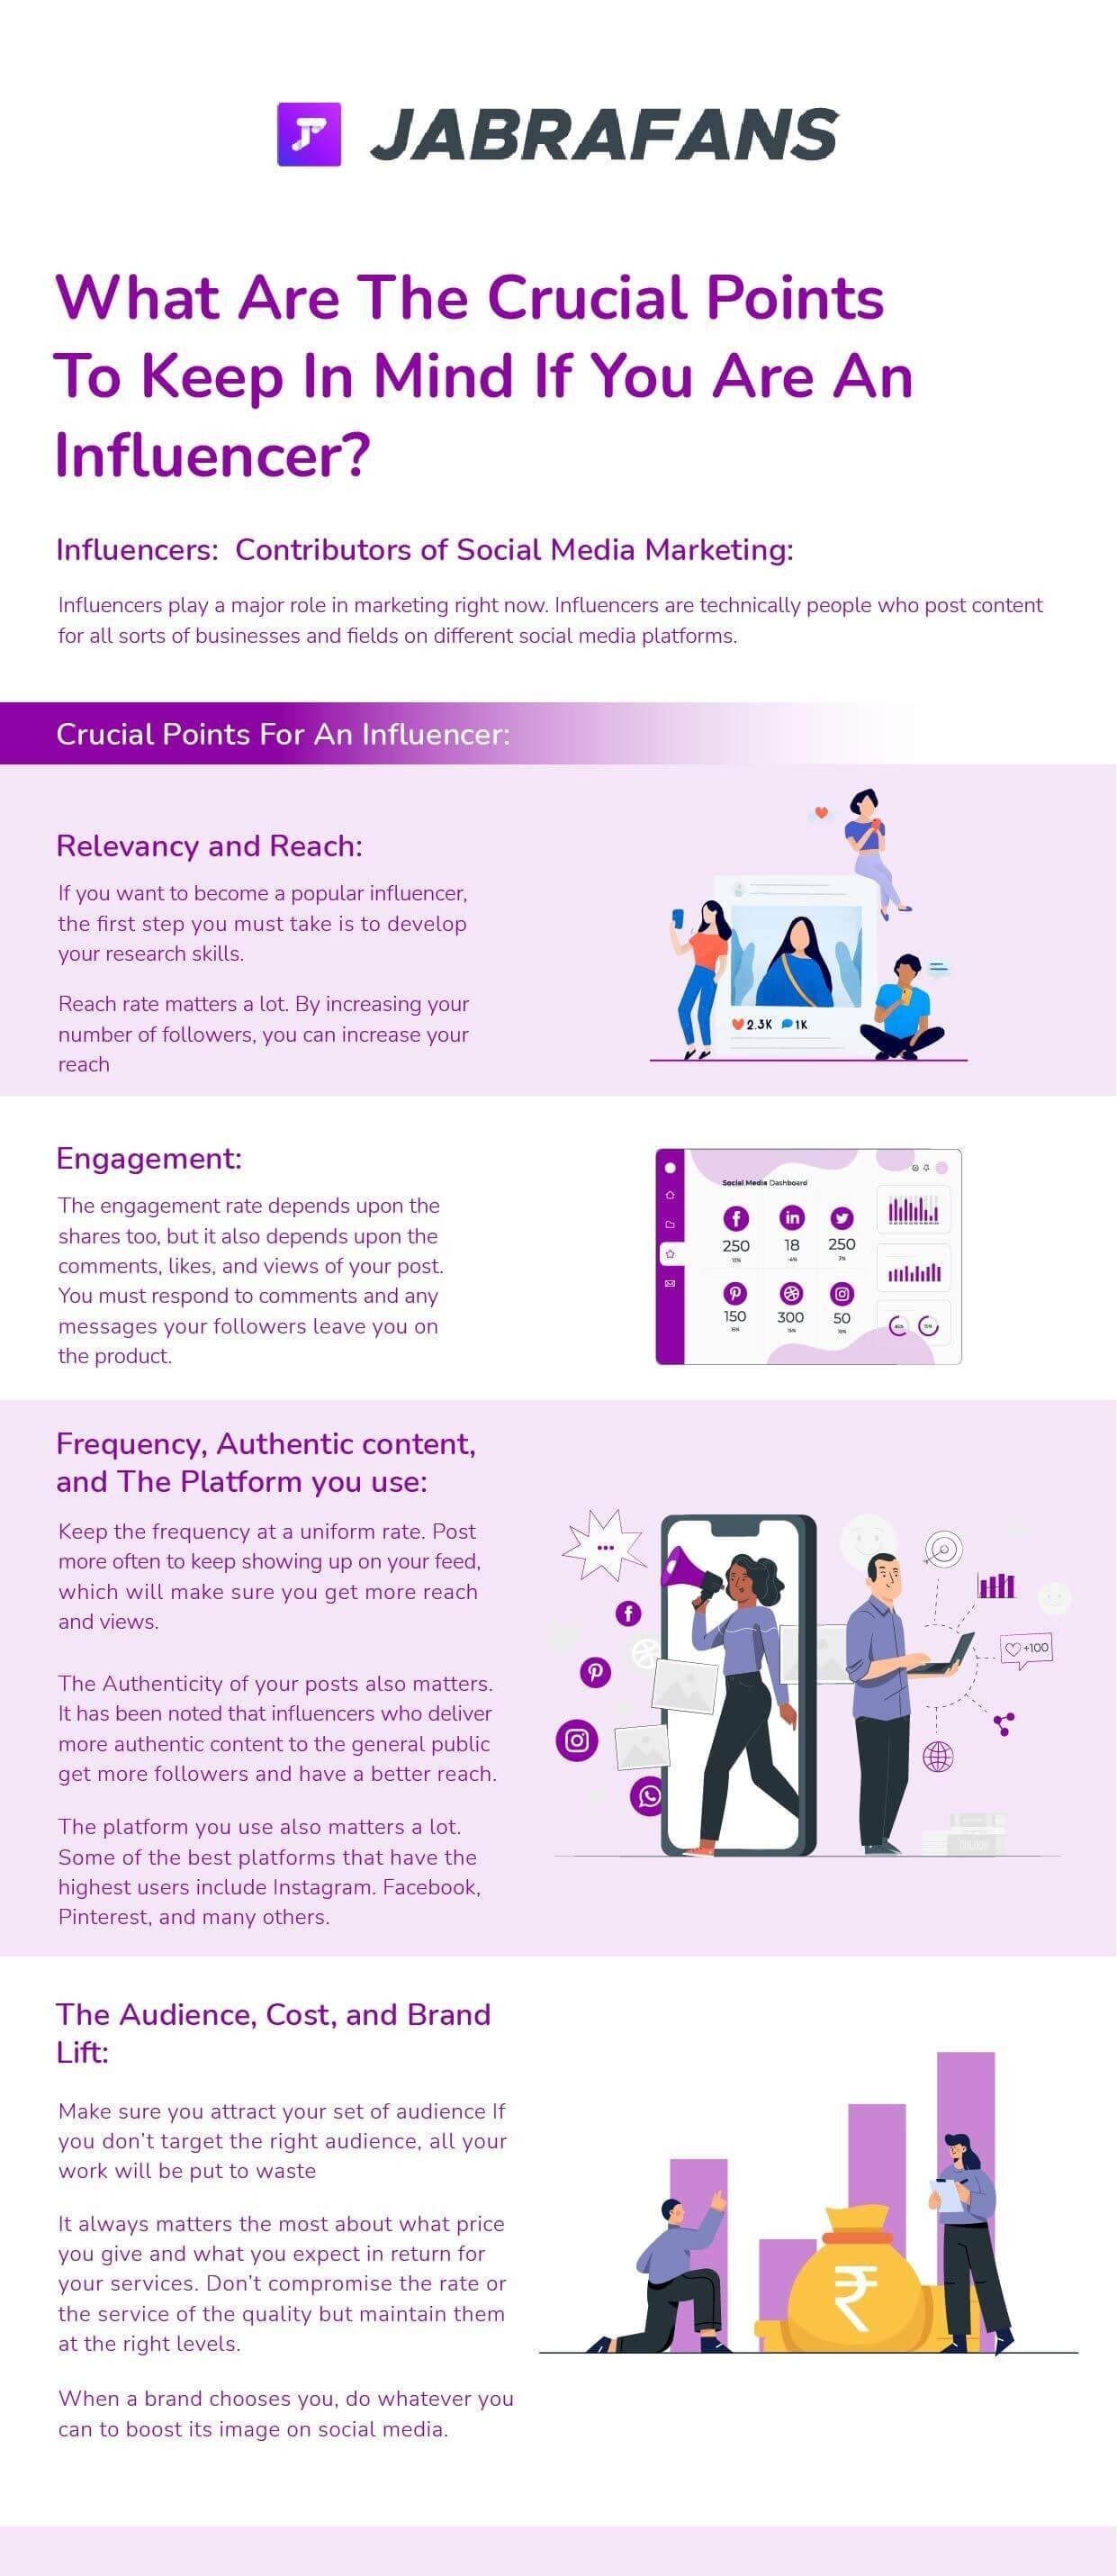 What Are The Crucial Points To Keep In Mind If You Are An Influencer?